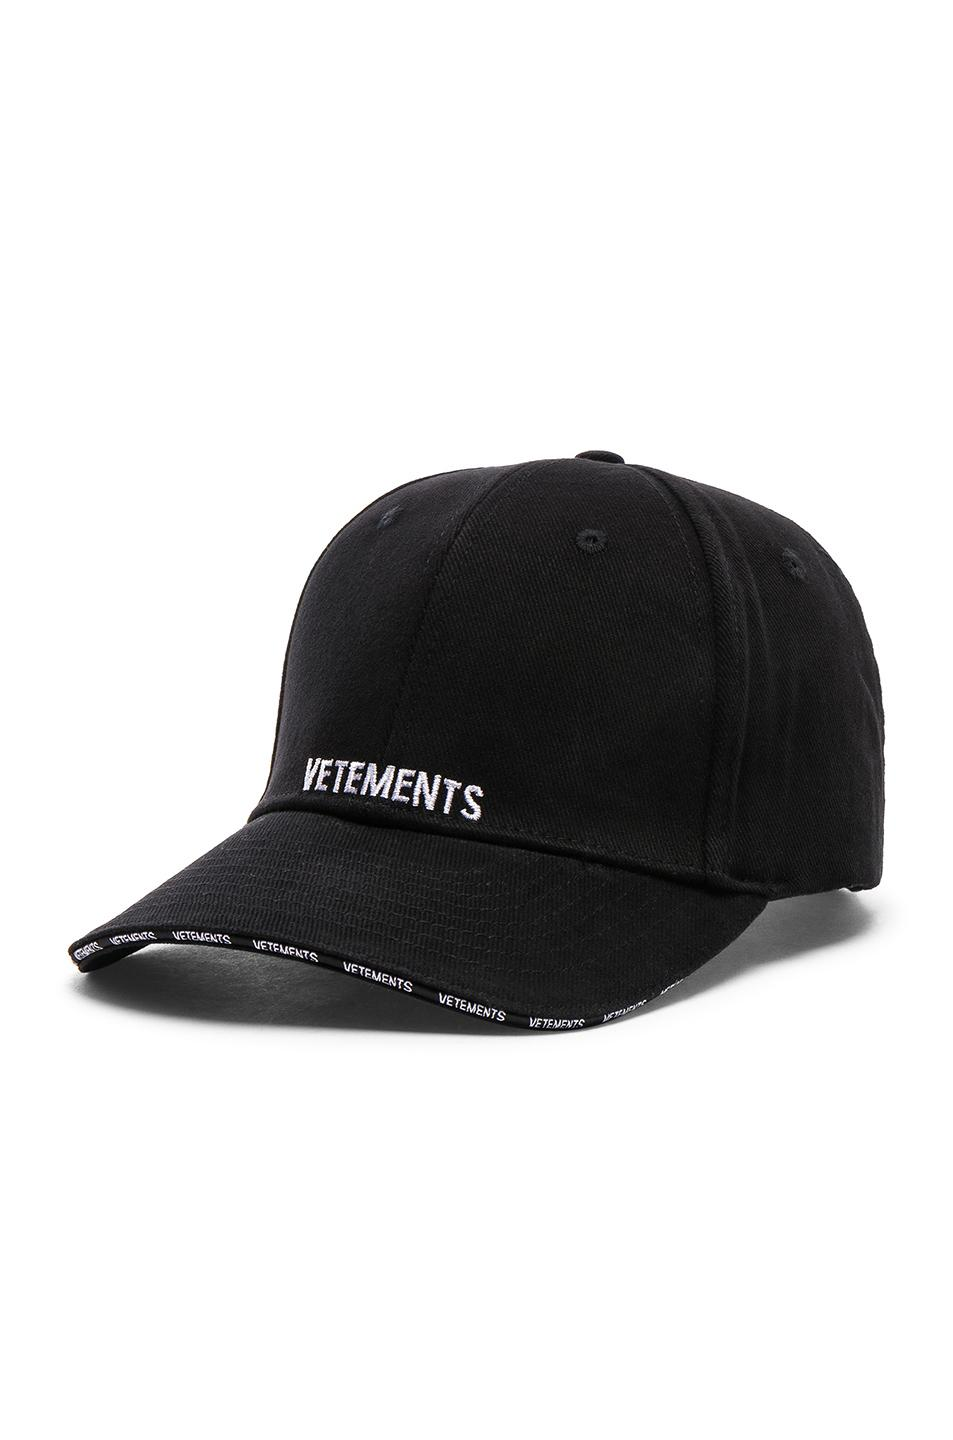 42dc3b045dbde Vetements Logo Cap in Black - Lyst